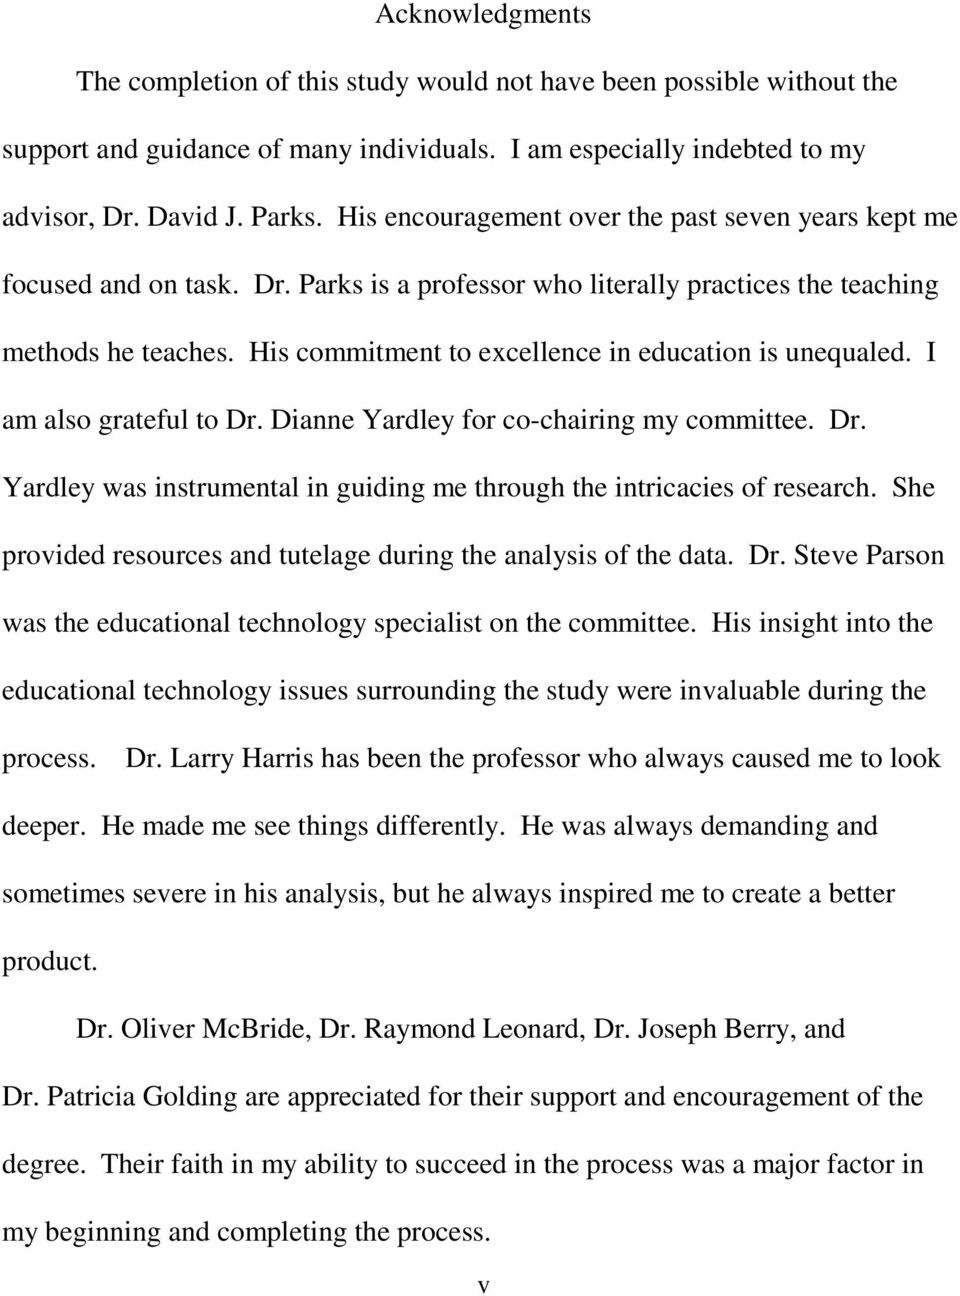 His commitment to excellence in education is unequaled. I am also grateful to Dr. Dianne Yardley for co-chairing my committee. Dr. Yardley was instrumental in guiding me through the intricacies of research.